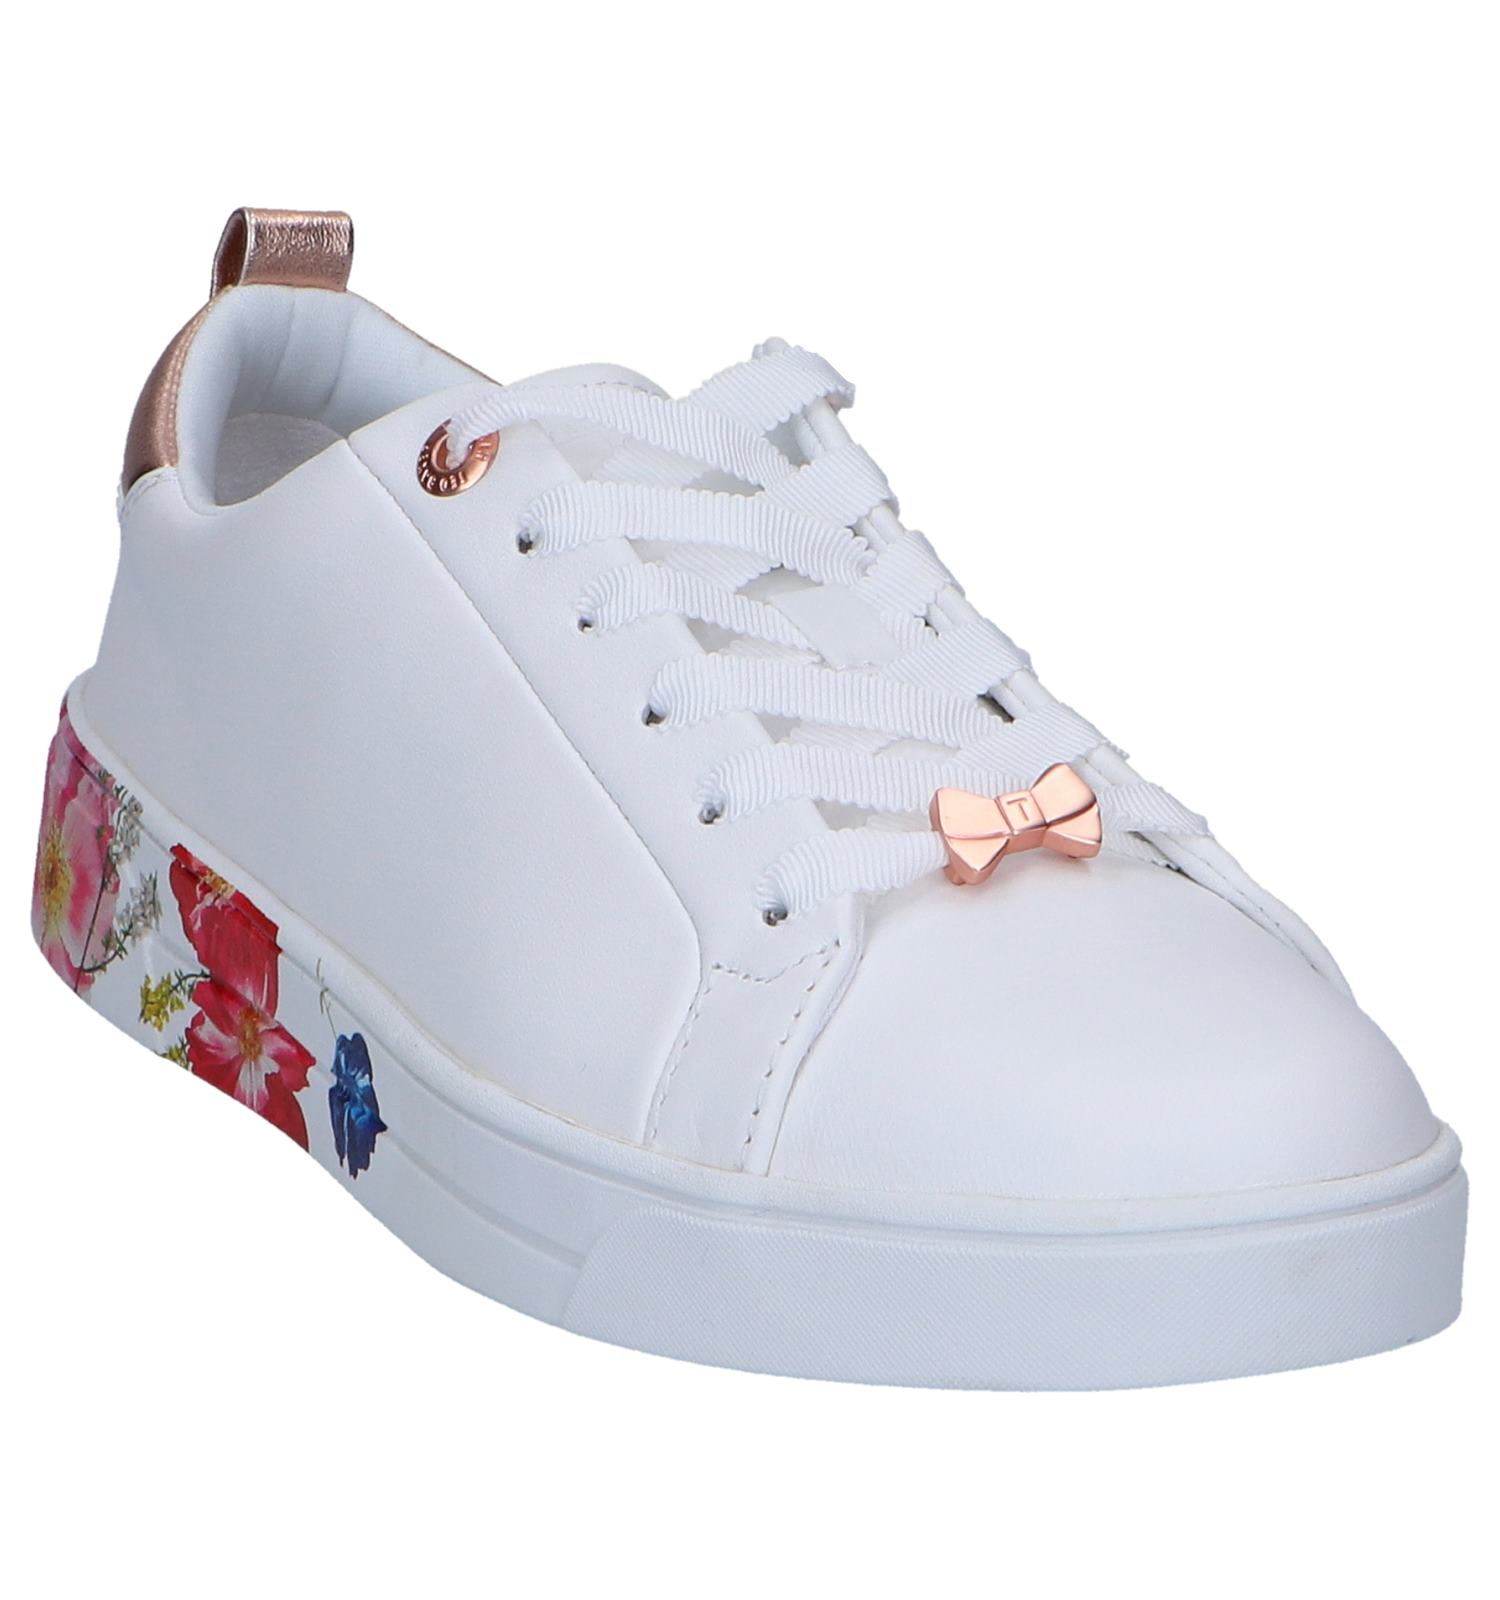 Roully Sneakers Roully Baker Baker Witte Sneakers Ted Ted Witte qUVGjzSpLM